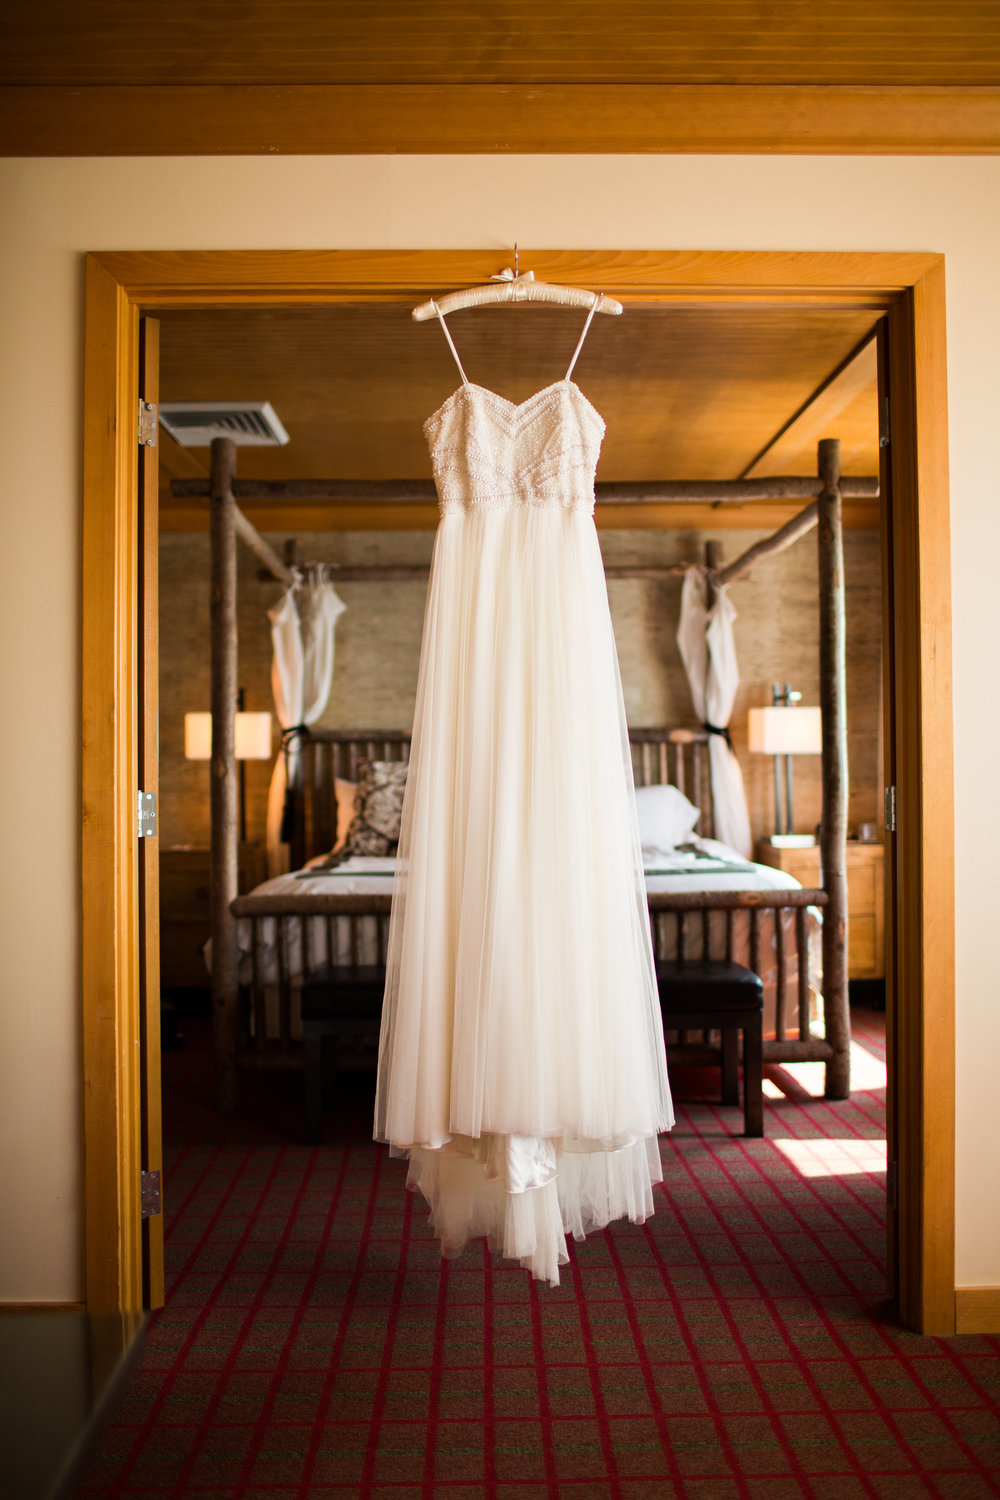 Seattle Wedding Planner, Wedding Wise | Ciccarelli Photography | Edgewater Hotel Wedding | Wedding Dress Shot